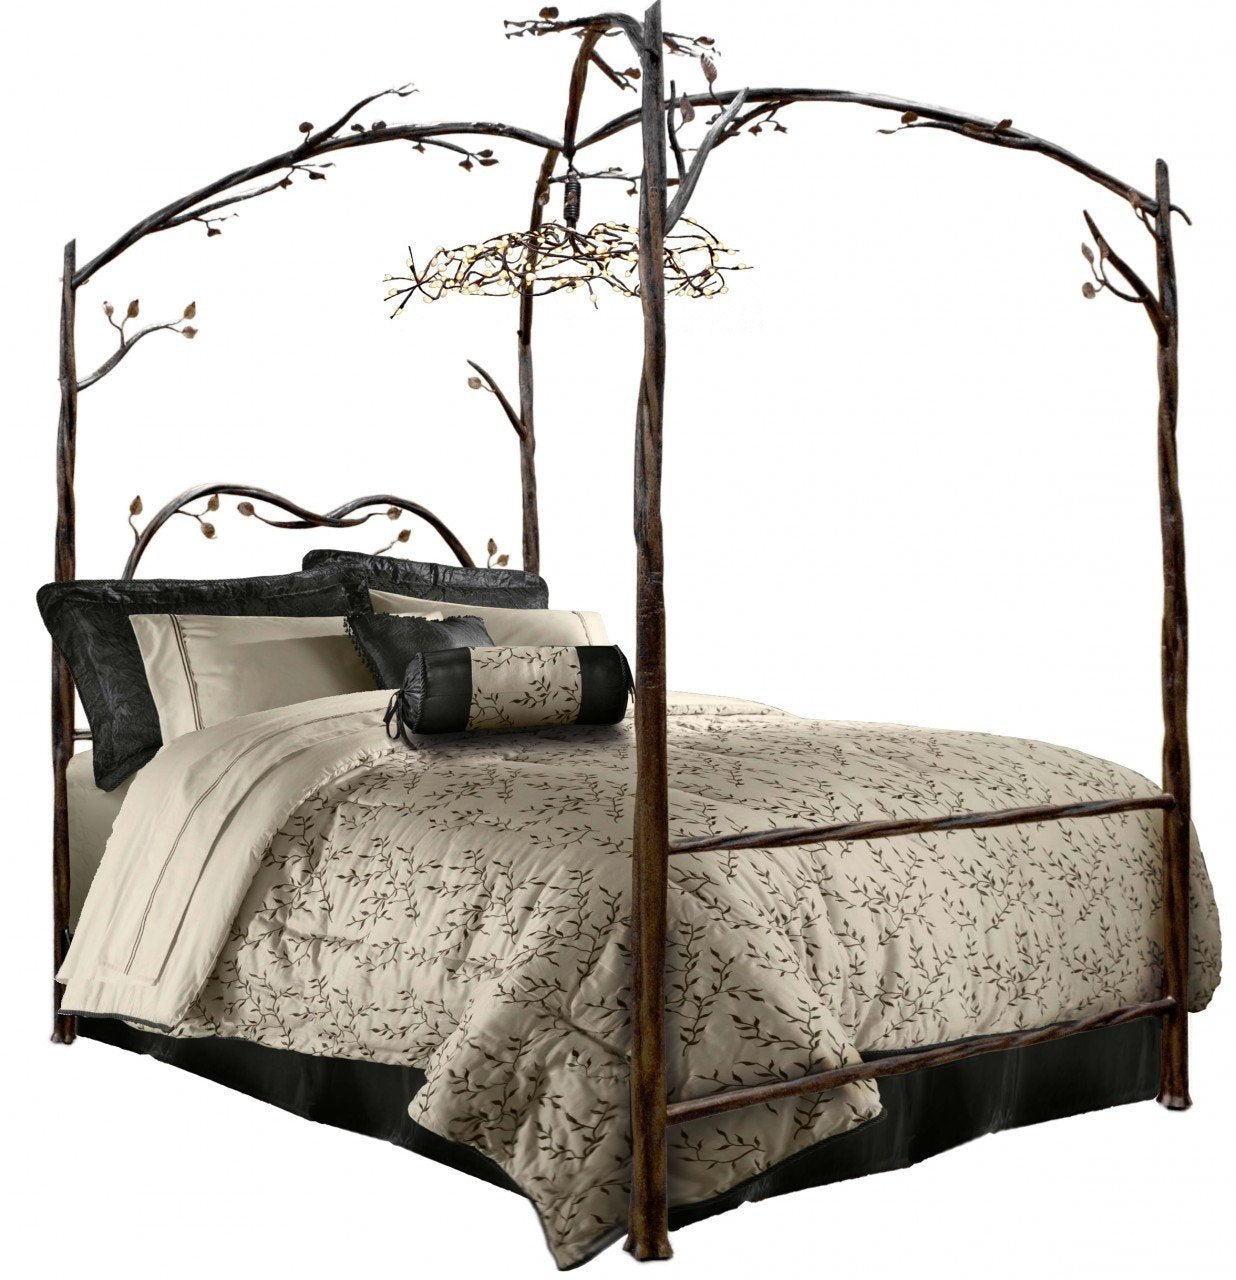 Forest Bed Hand Rubbed Copper Copper Accent Canopy 398 Product Photo